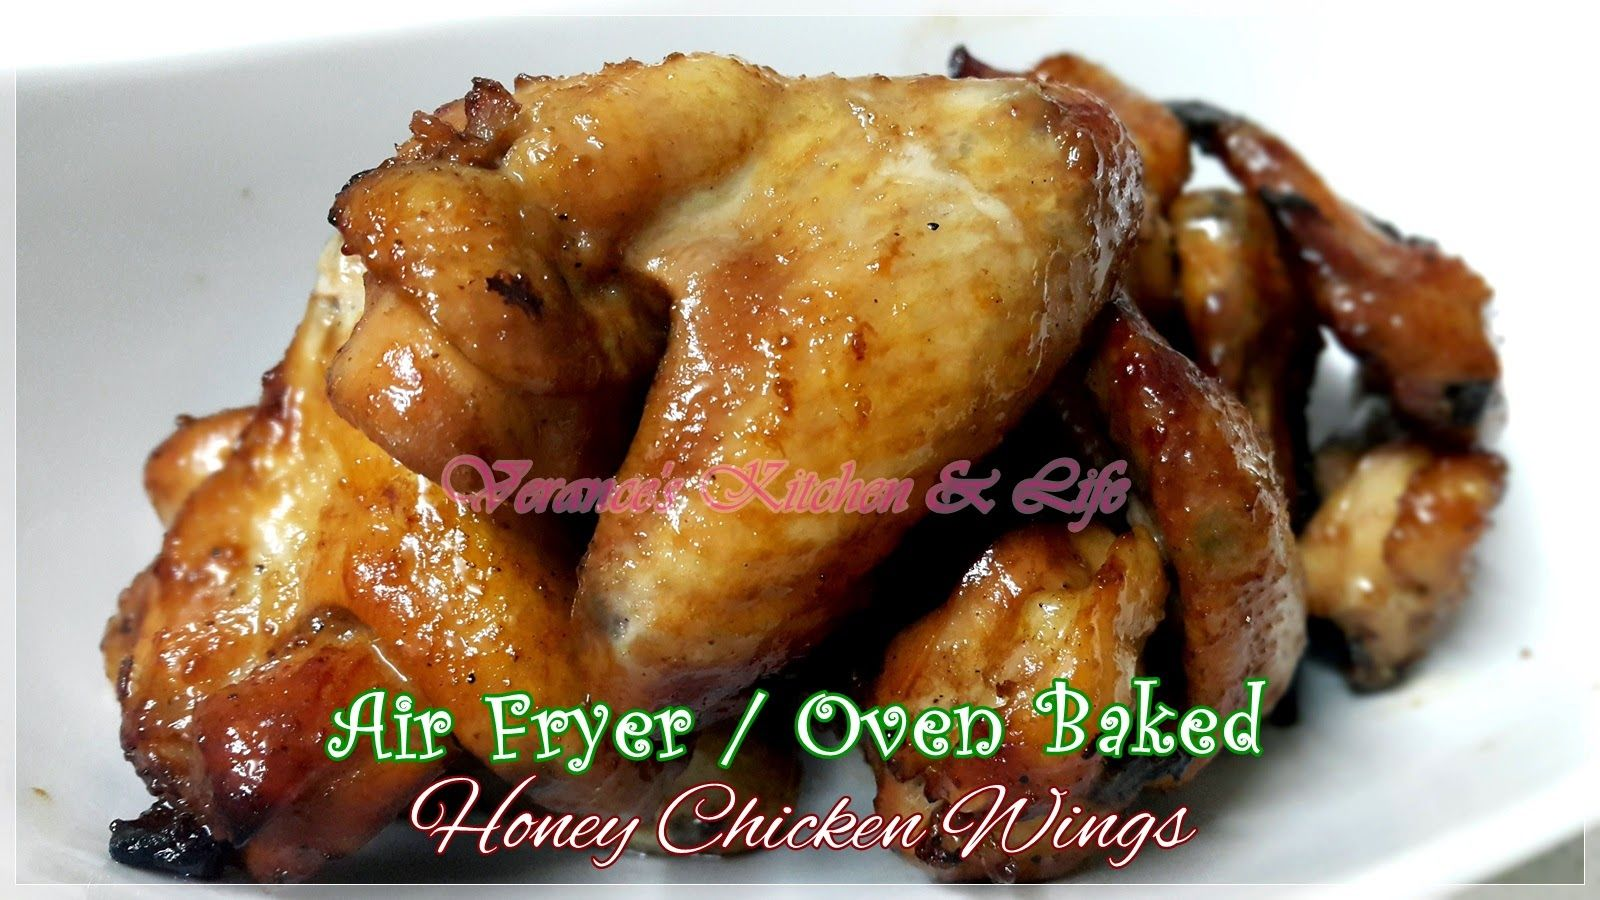 AirFryer / Oven Baked Honey Chicken Wings Honey chicken